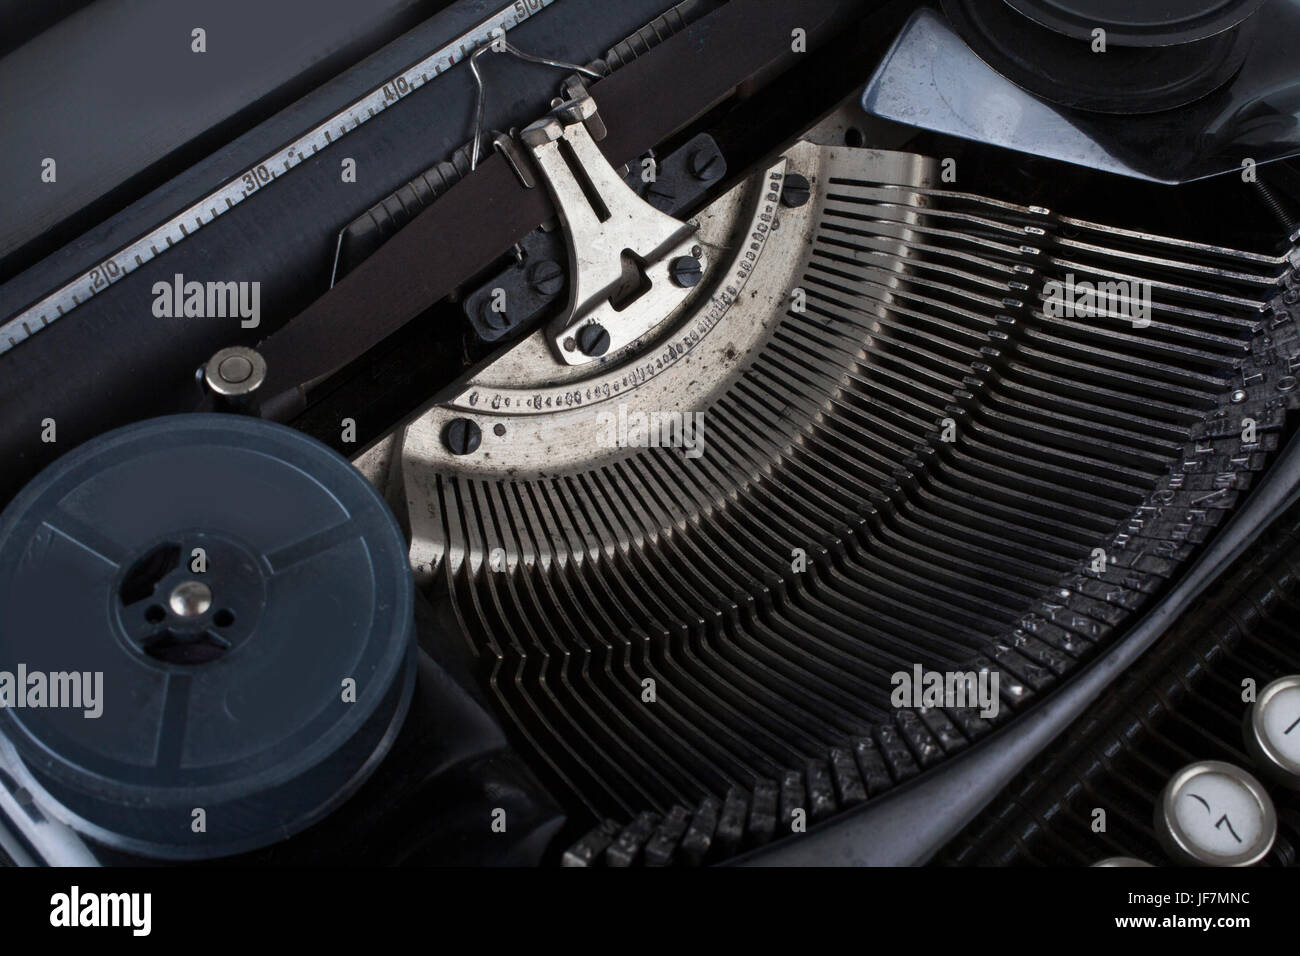 old typewriter mechanism - Stock Image